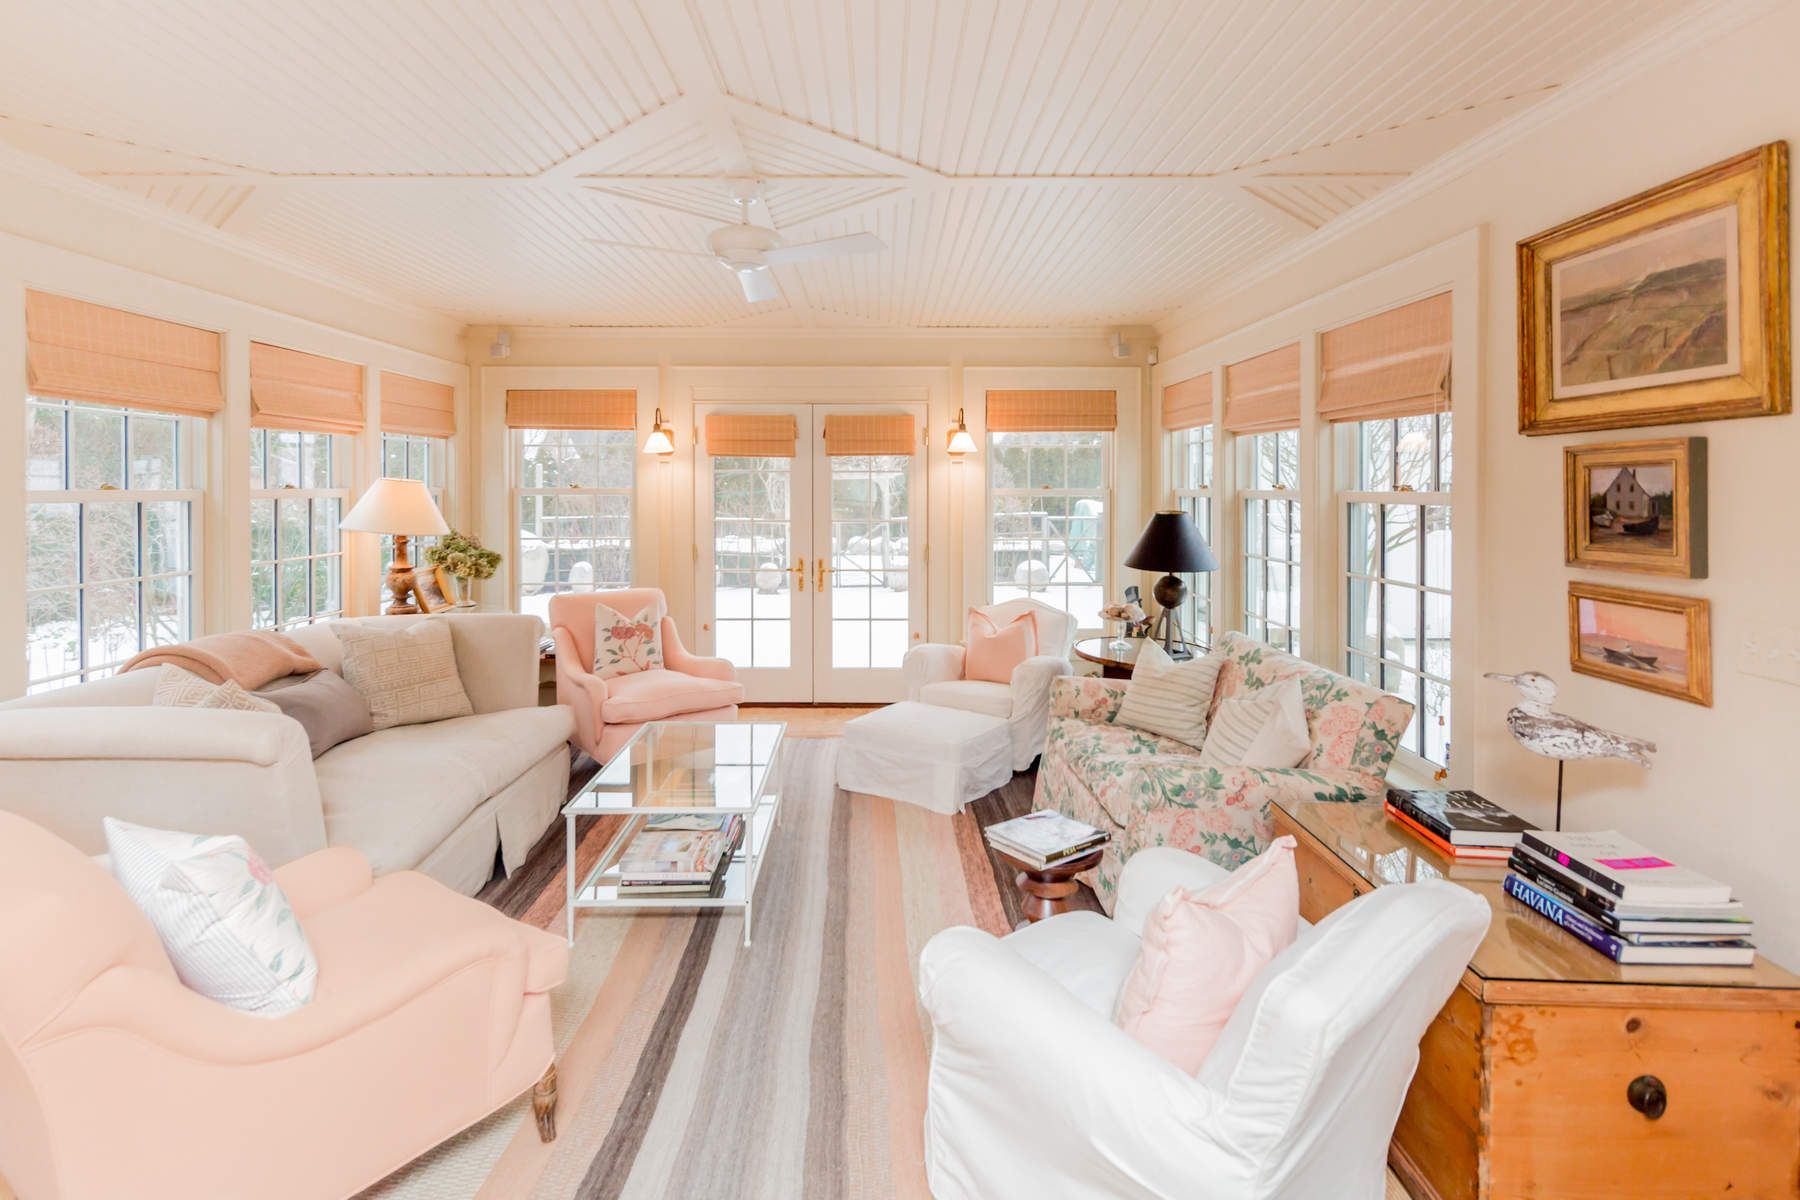 Single Family Home for Rent at Village Beauty Pool & Garden 88 Buell Lane East Hampton, New York 11937 United States